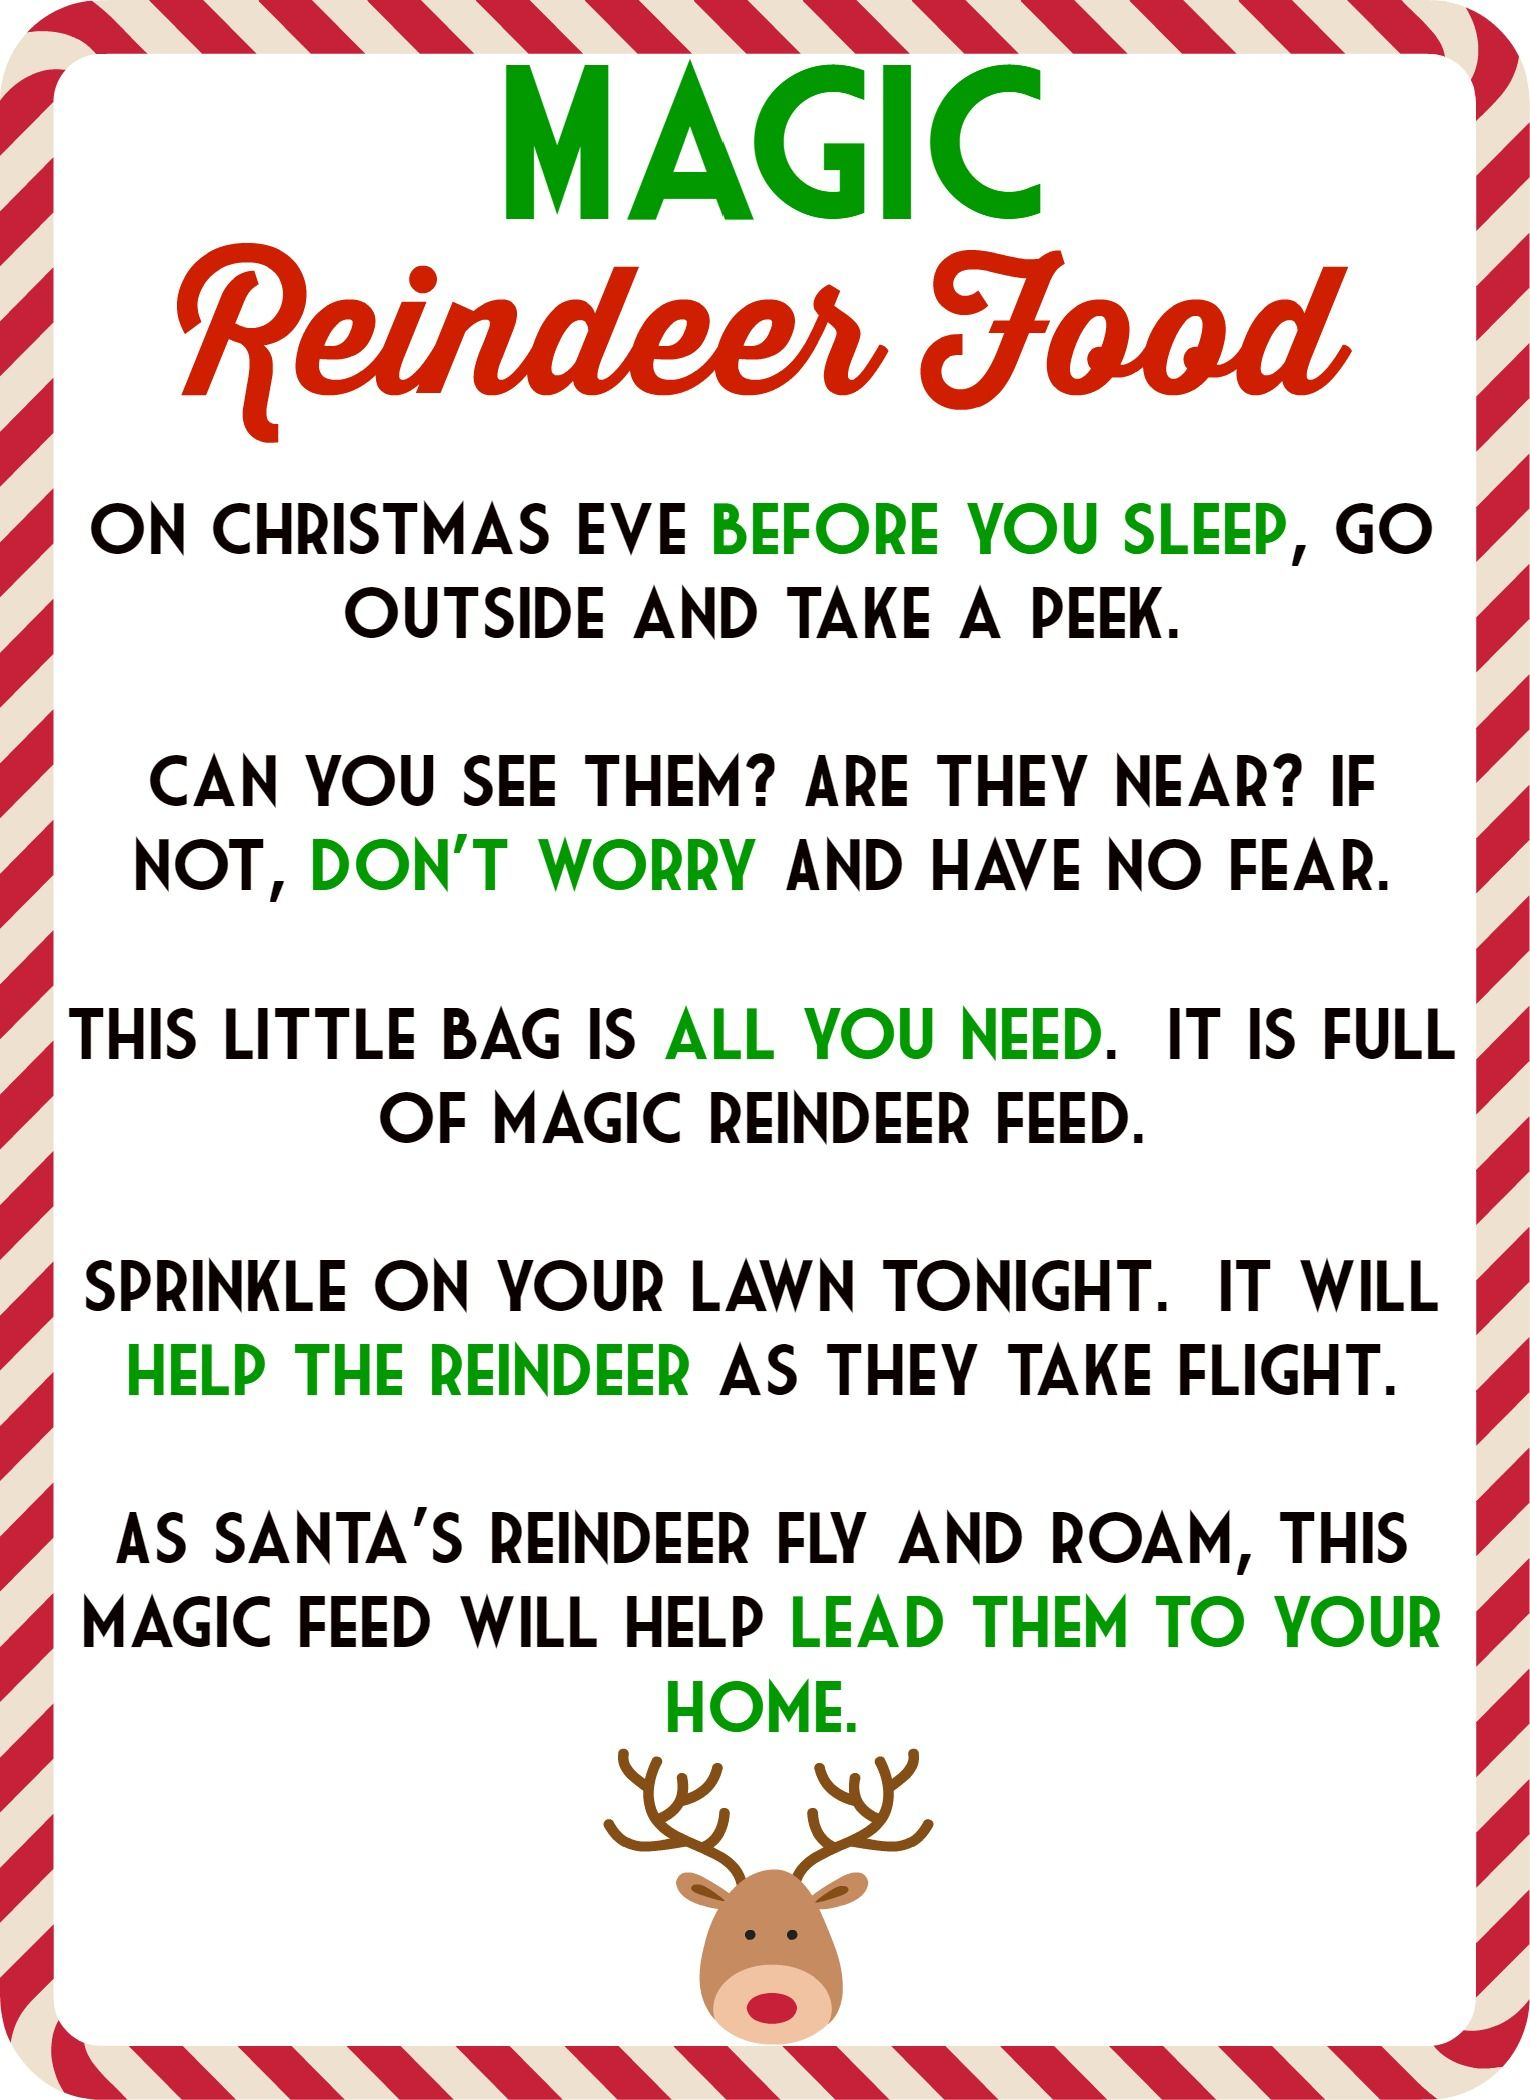 photo regarding Reindeer Food Poem Printable referred to as Food items Recipes upon Recipes Magic reindeer foods, Reindeer